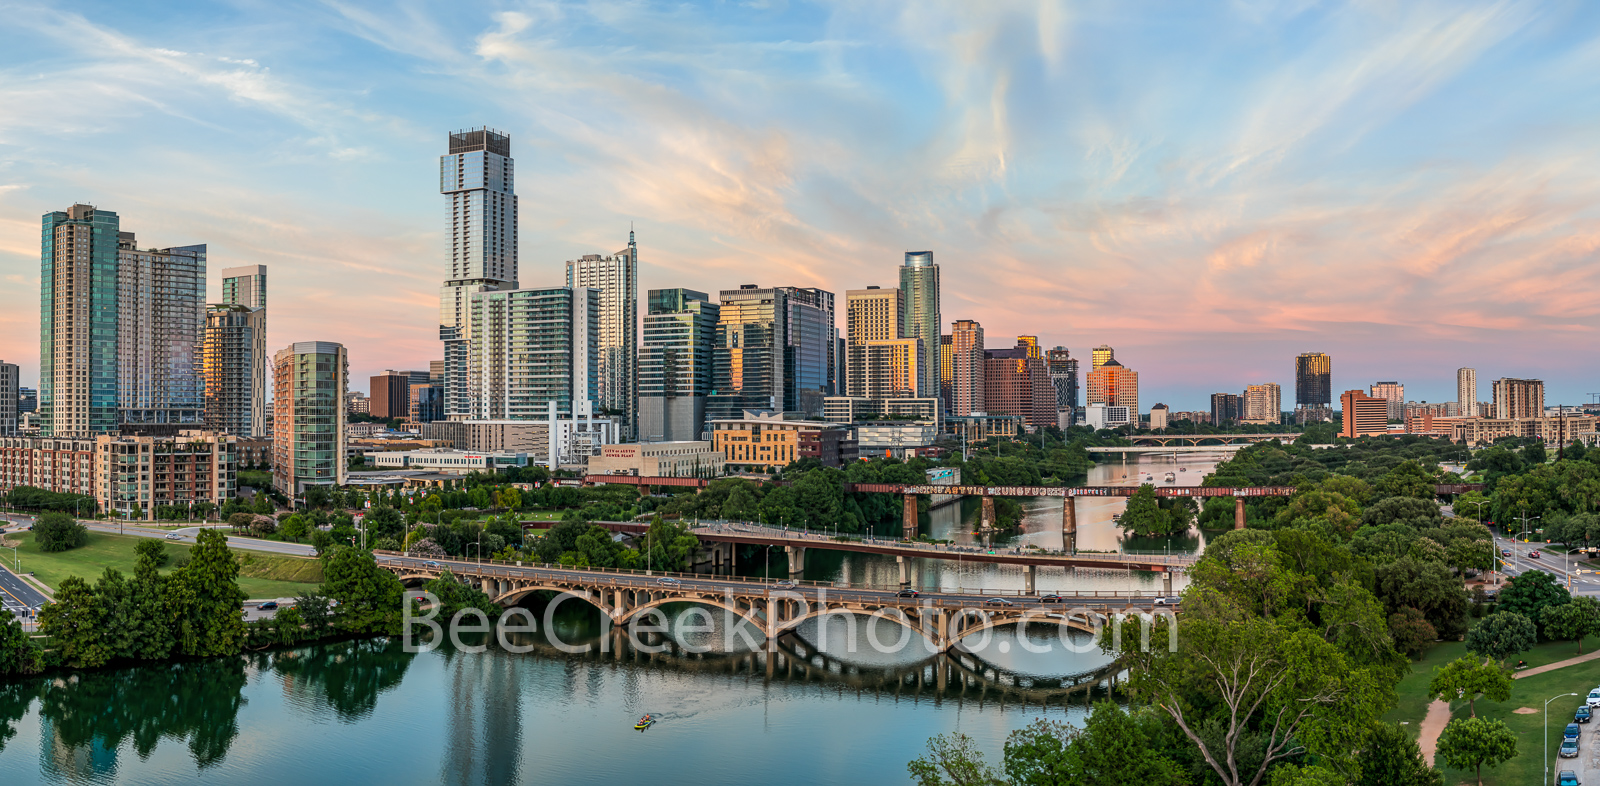 Austin skyline, aerial, drone, sunset, pics of texas, pics of austin, lamar bridge, lady bird lake, clouds, pink, orange, sky, clouds, hike and bike trail, architecture, urban landscape, bridges,, photo